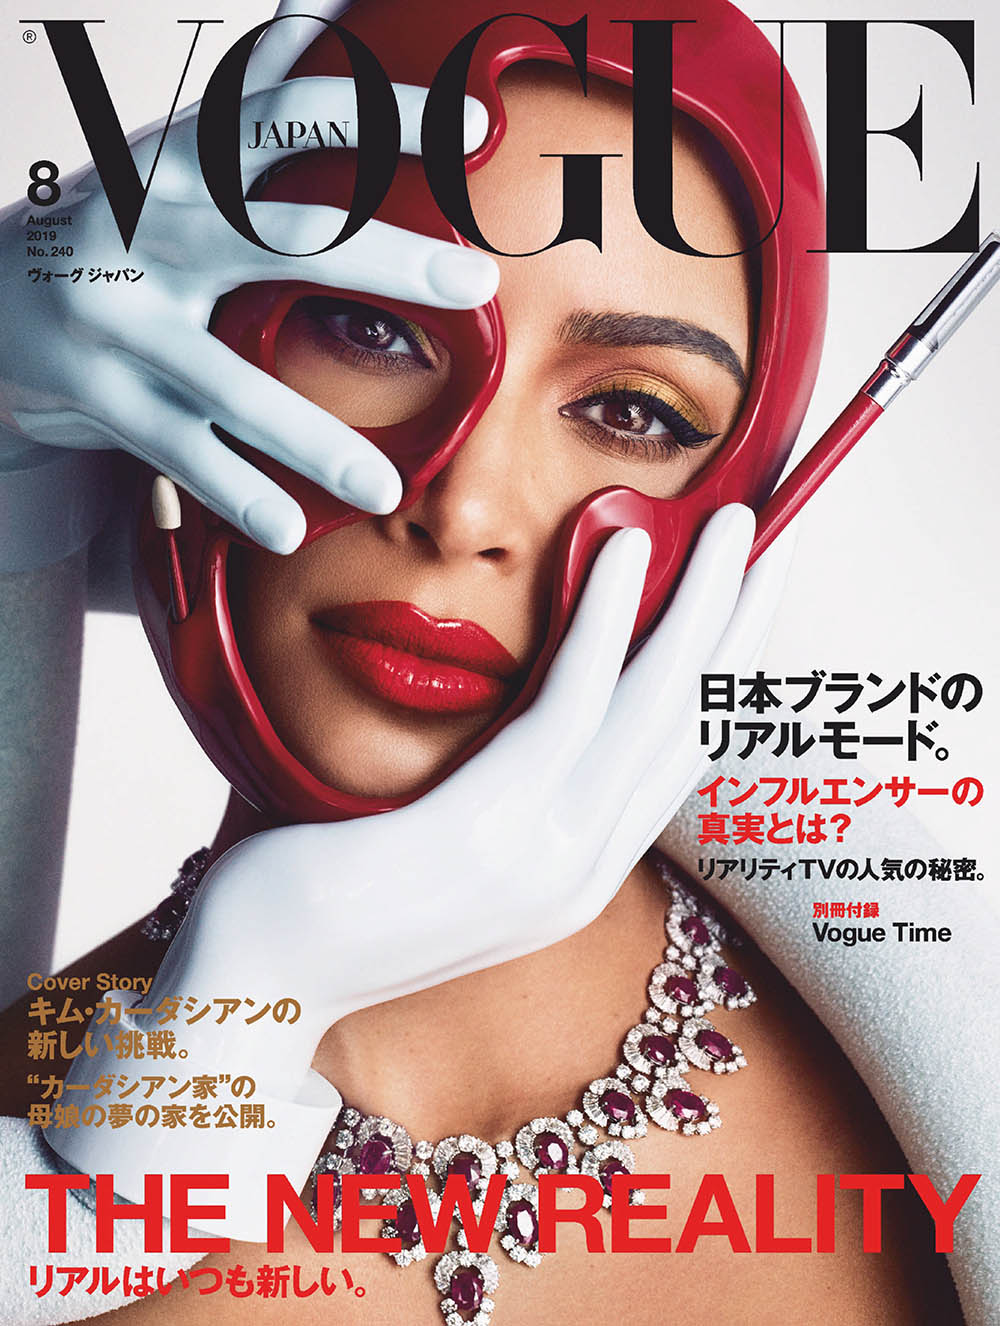 Kim Kardashian West covers Vogue Japan August 2019 by Luigi & Iango